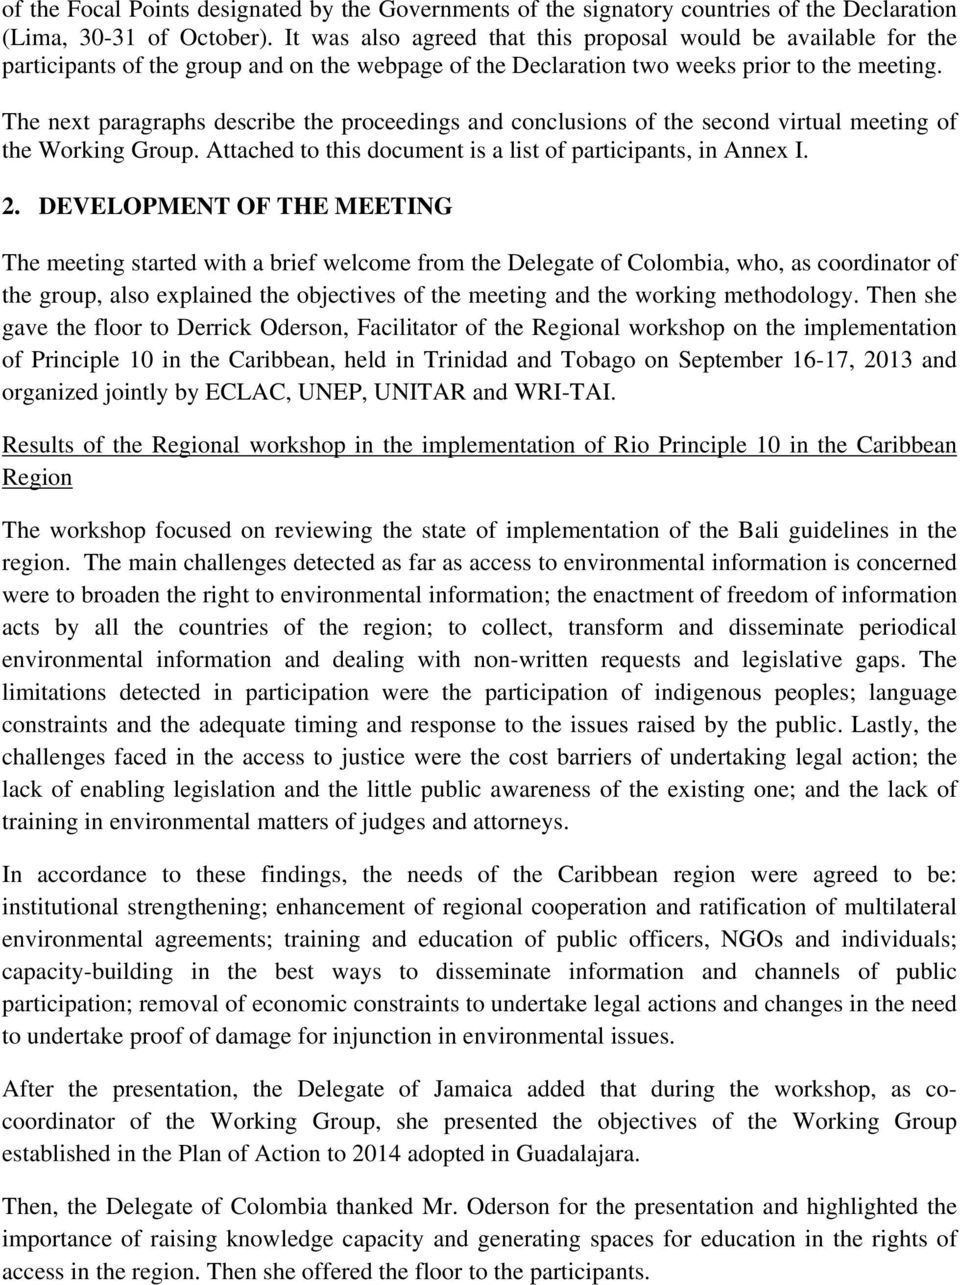 The next paragraphs describe the proceedings and conclusions of the second virtual meeting of the Working Group. Attached to this document is a list of participants, in Annex I. 2.